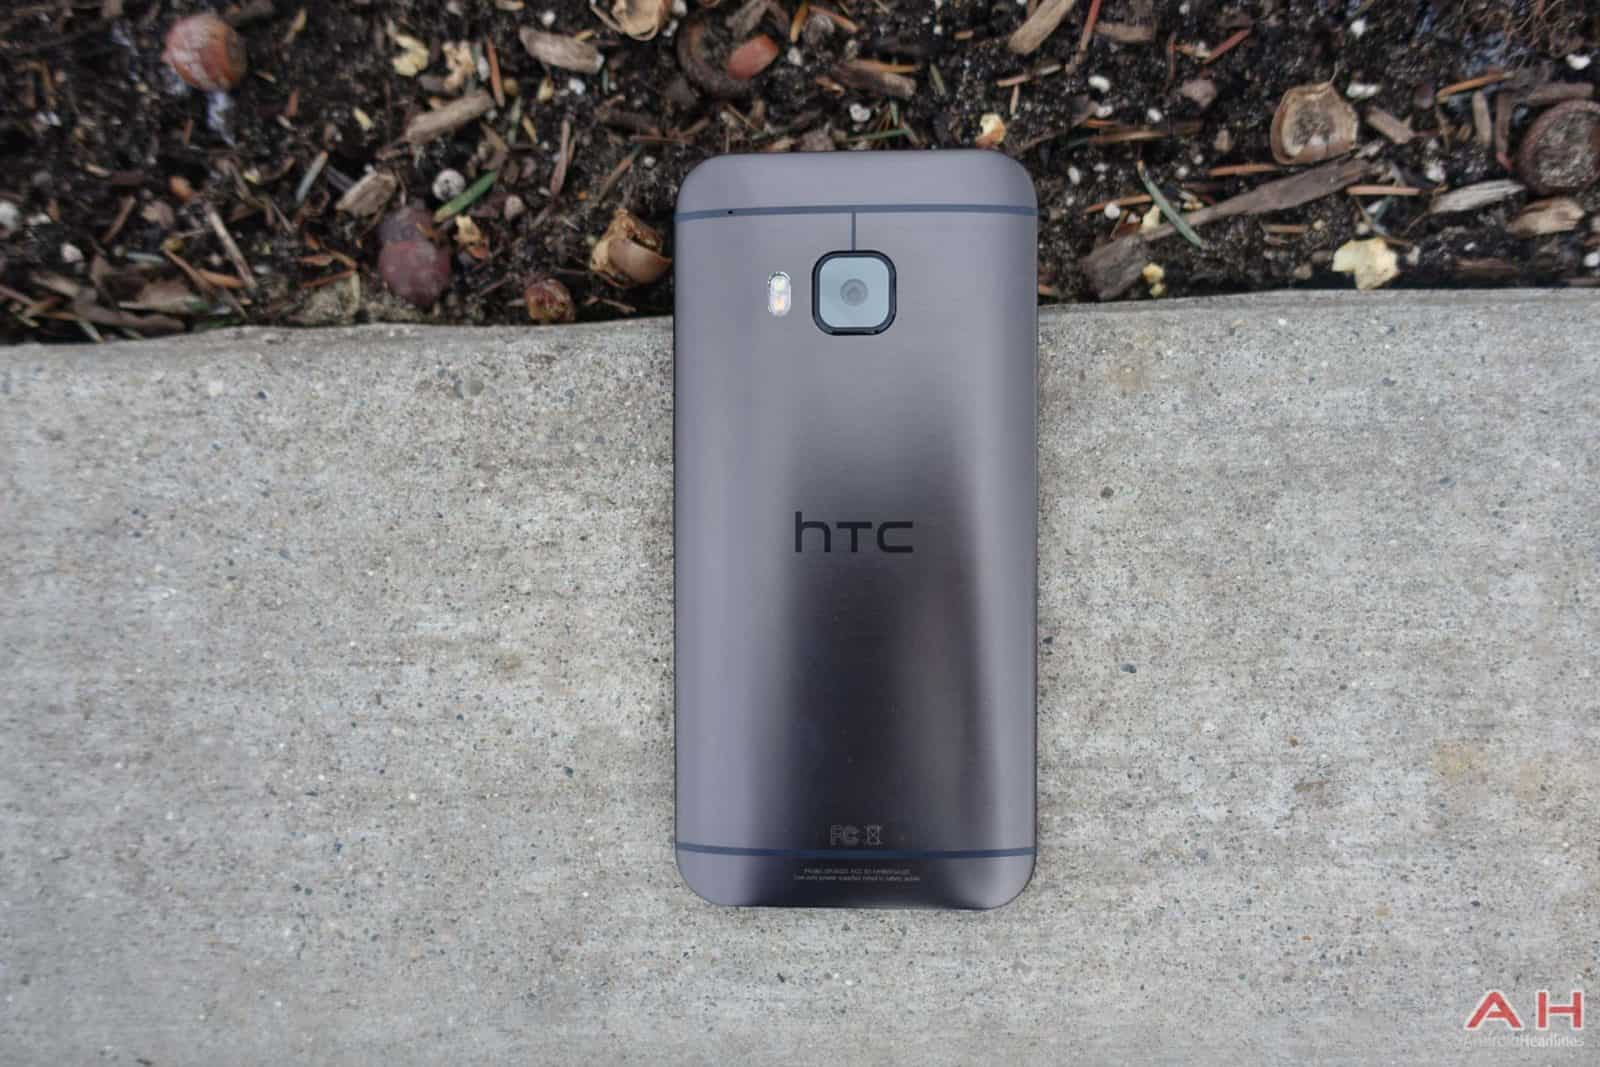 HTC-One-M9-Review-AH-50